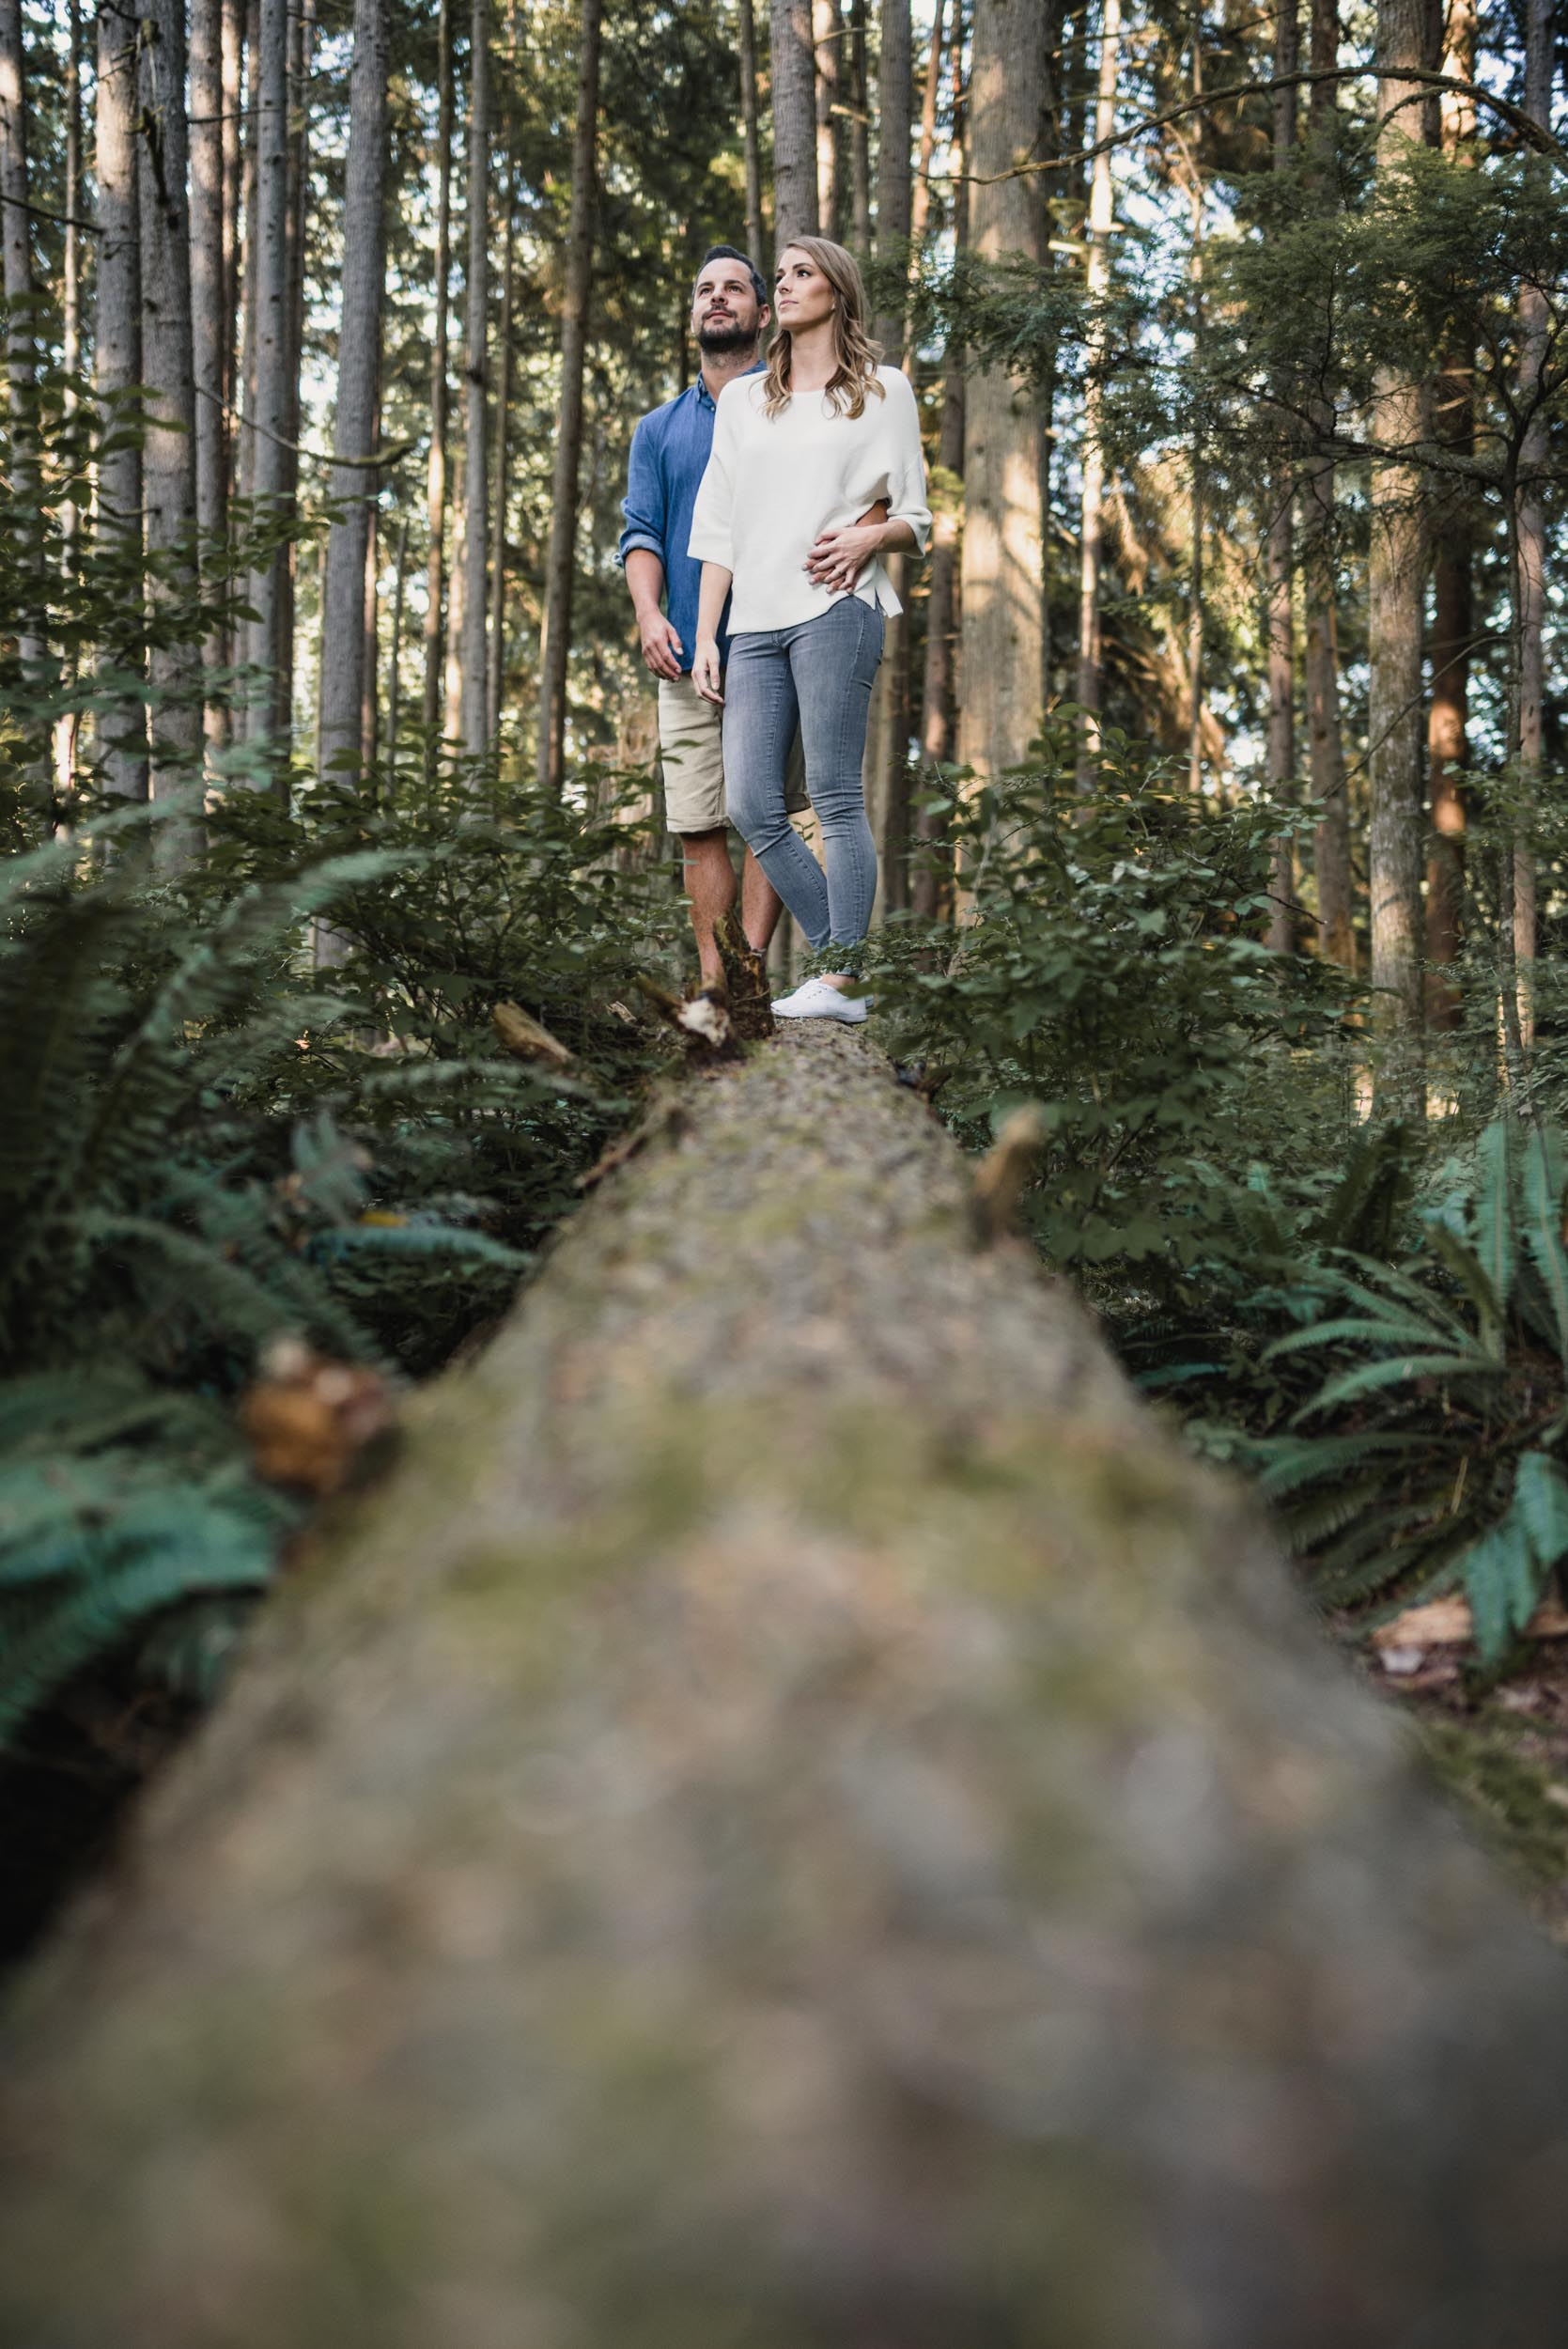 Couple stands together on fallen tree in forest